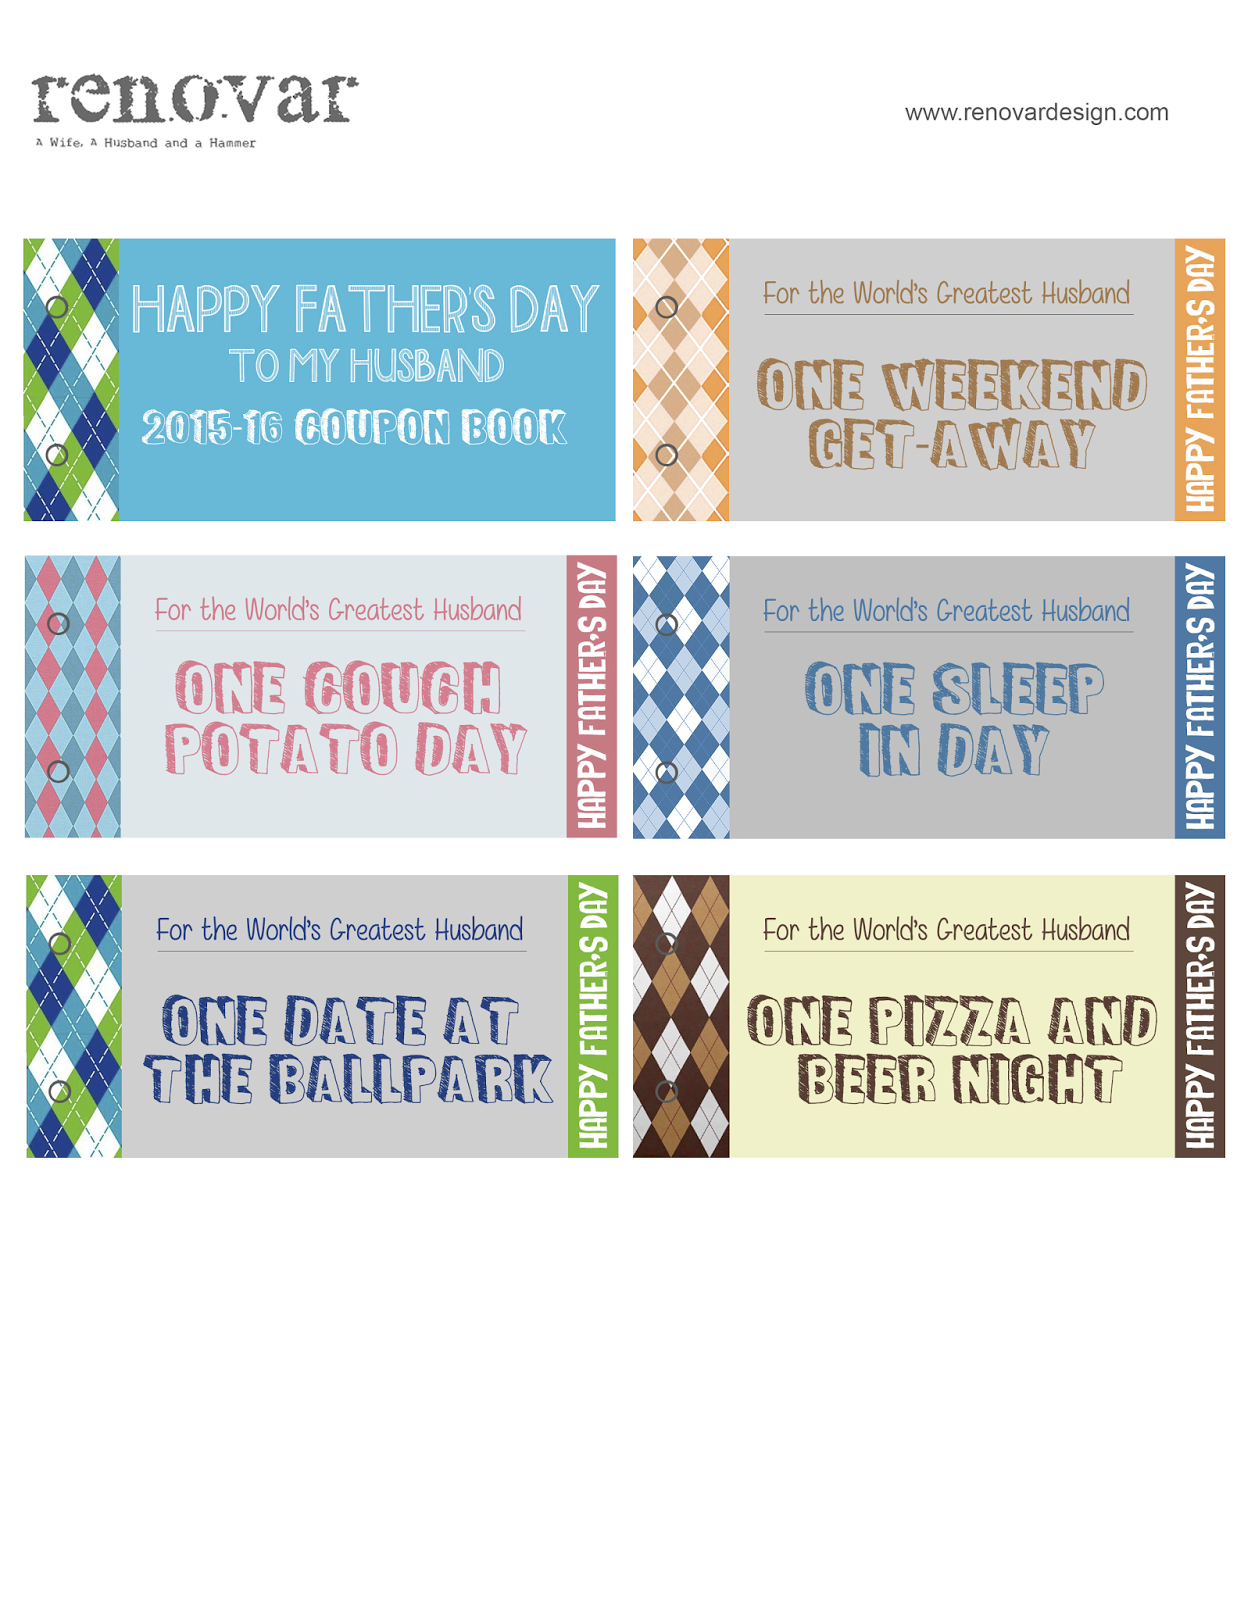 from gardners bergers renovar father s day printable coupon book renovar fathers day coupon book via fg2b